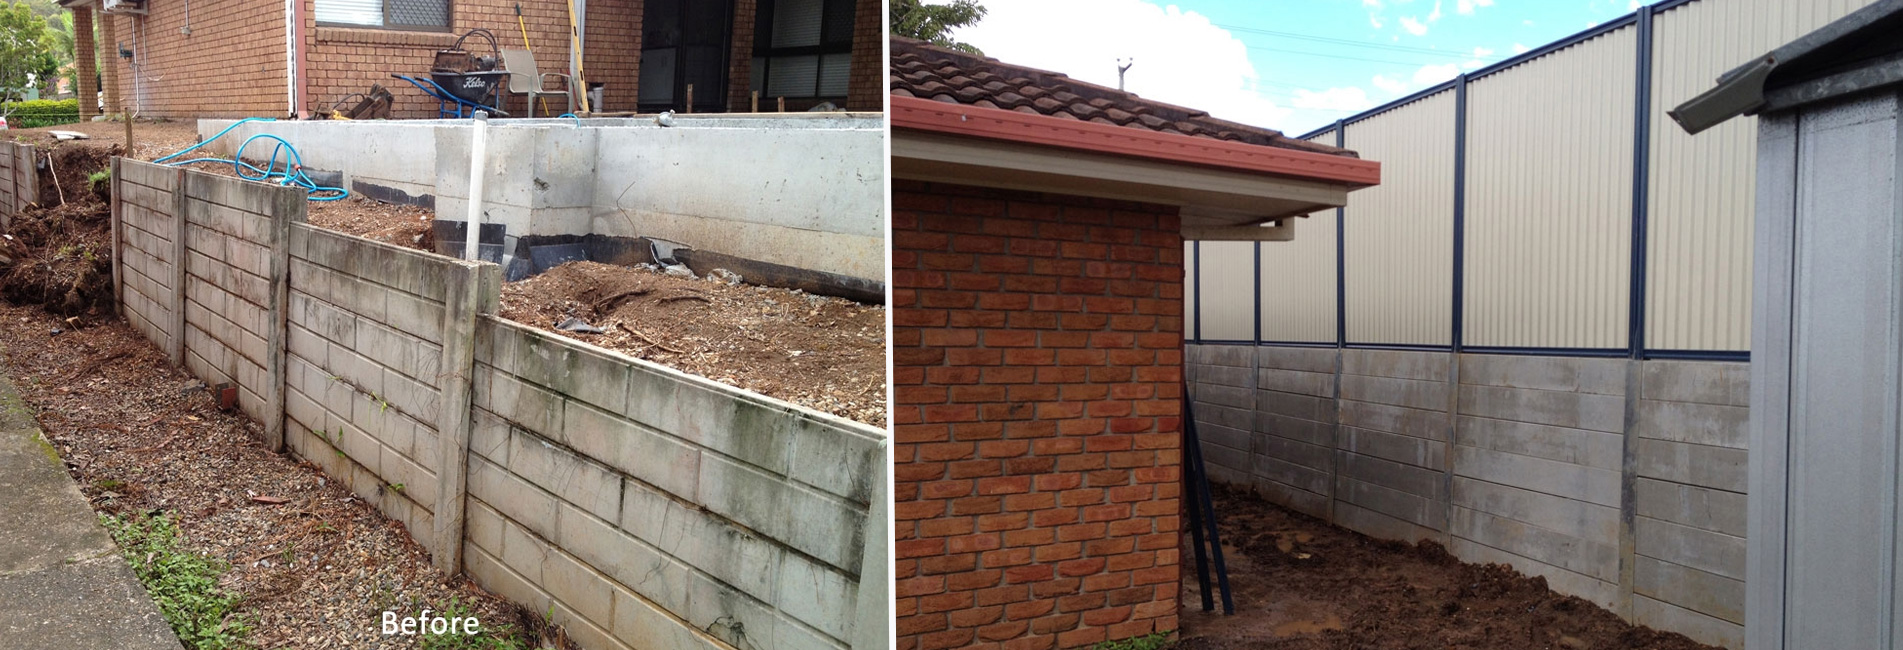 Timber Retaining Walls Springfield Lakes, Concrete Retaining Walls Flagstone, Retainer Wall Ipswich